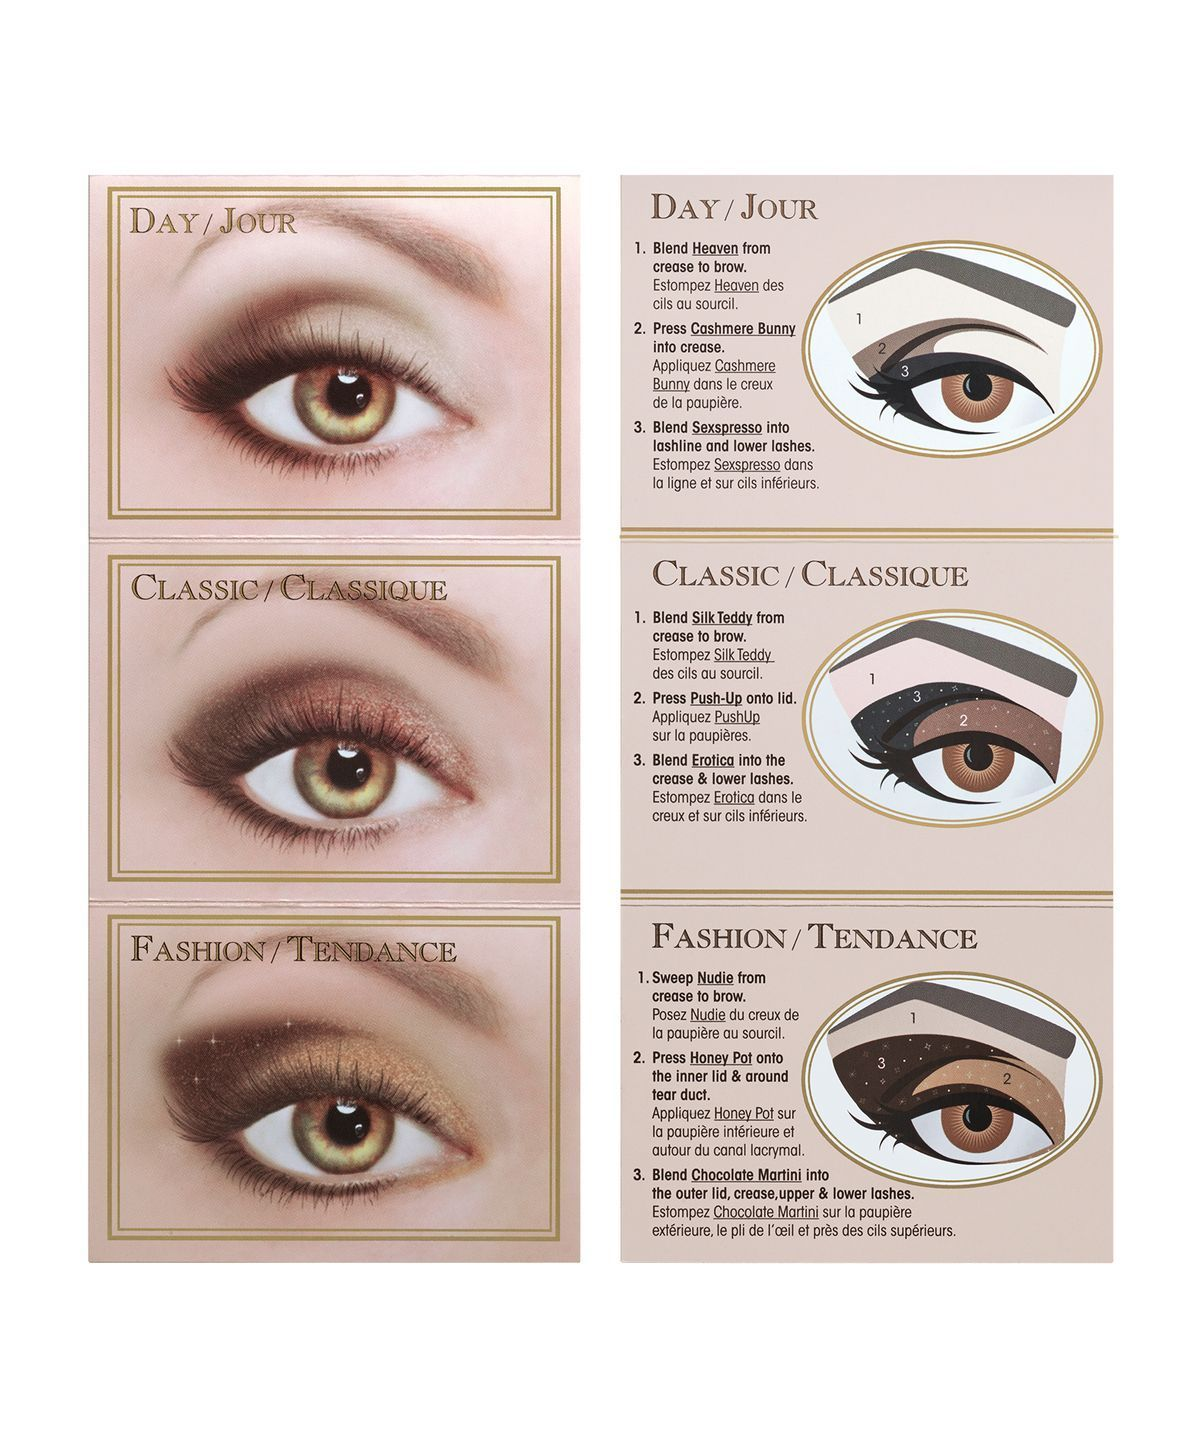 Finding Eye Shadow Tutorials To Revamp Your Look With Images